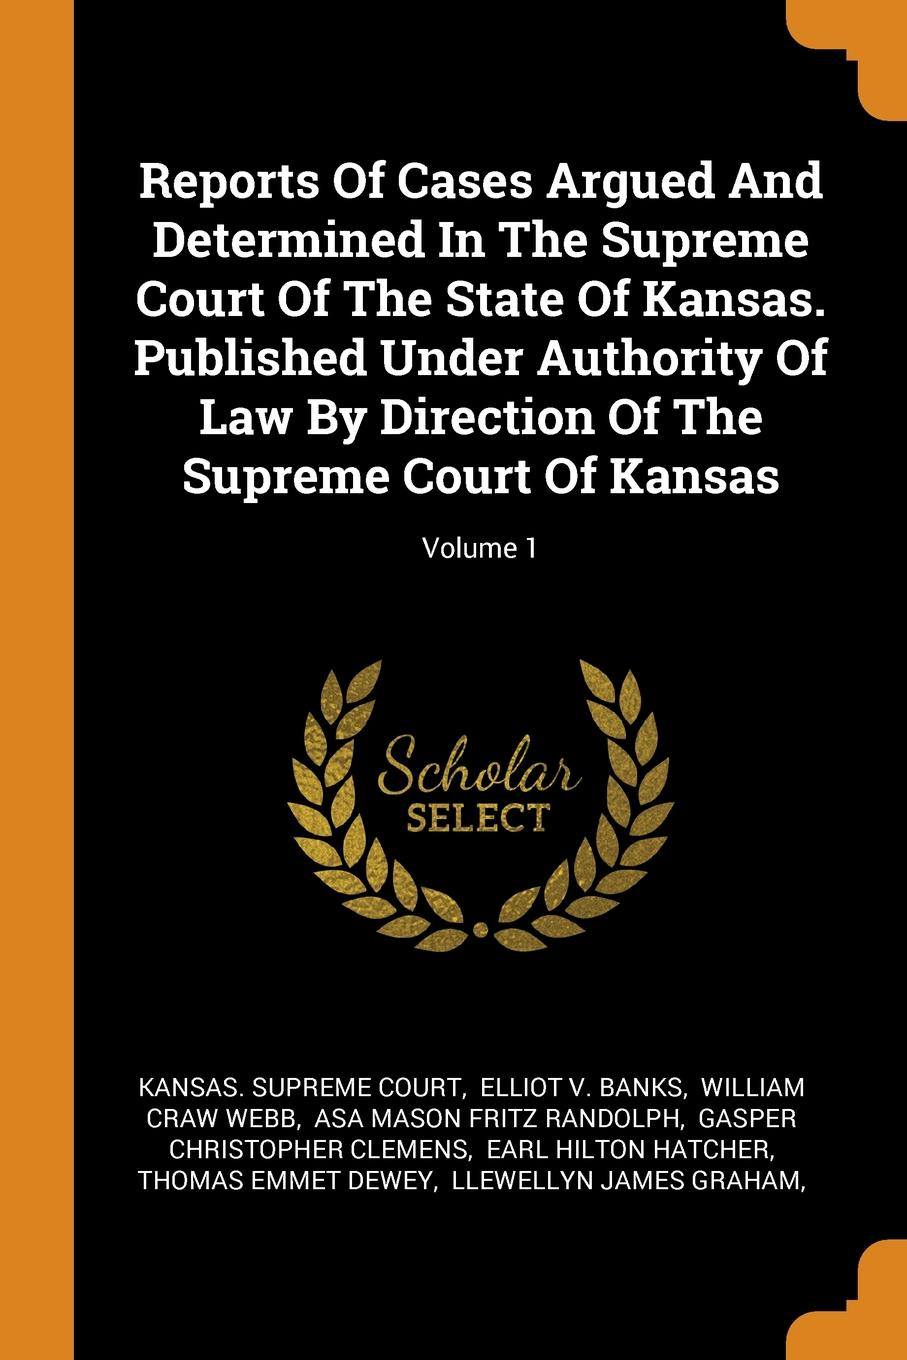 Kansas. Supreme Court Reports Of Cases Argued And Determined In The Supreme Court Of The State Of Kansas. Published Under Authority Of Law By Direction Of The Supreme Court Of Kansas; Volume 1